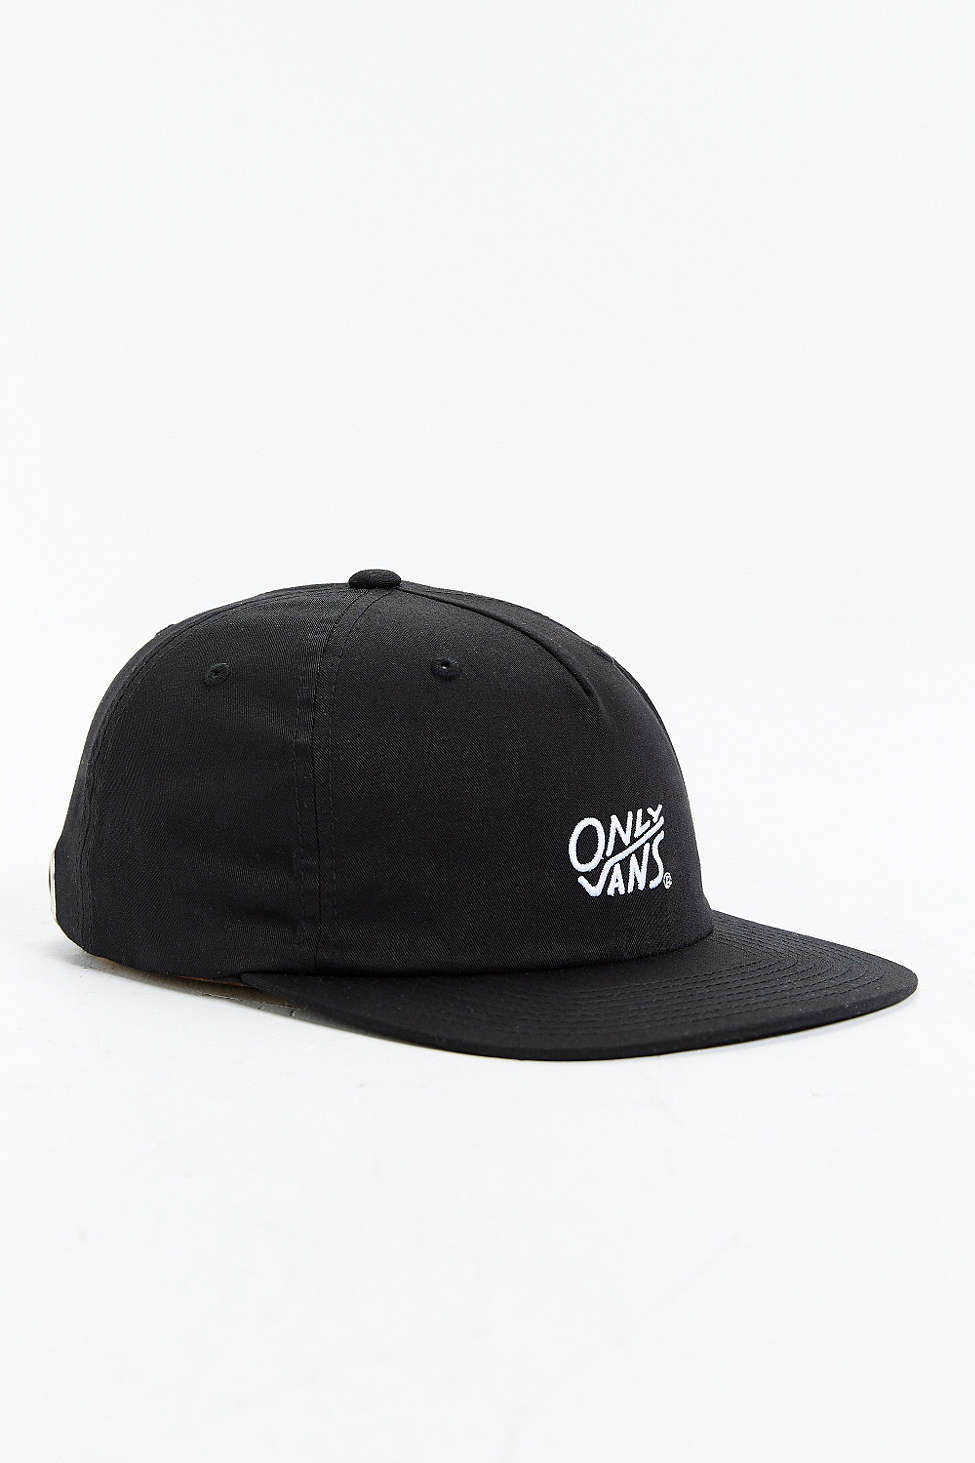 2fb30c13242 Lyst - Vans X Only Ny Unstructured Hat in Black for Men